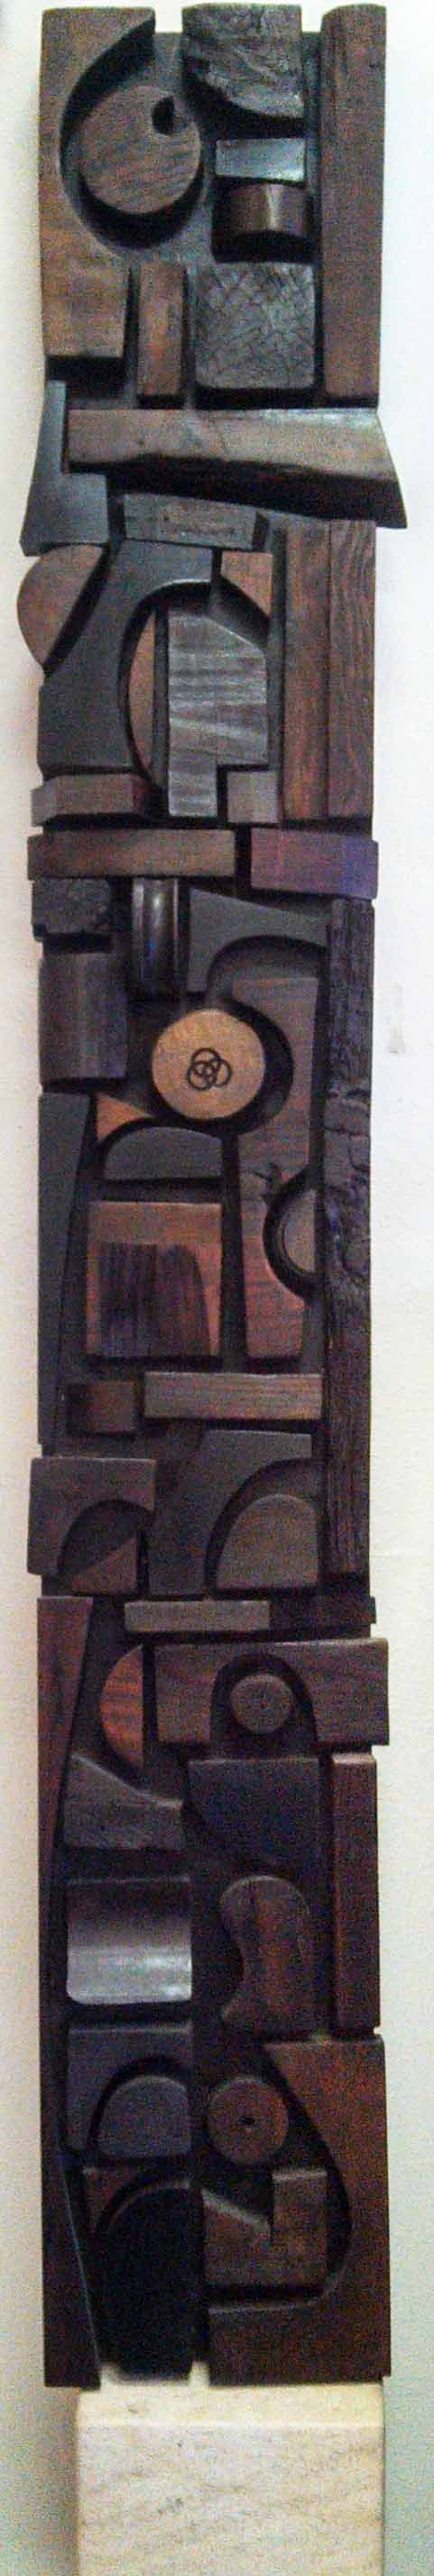 Wood Assemblage Panel by artist Mabel Hutchinson.  Inspired by an exhibit of the work of Louise Nevelson, Mabel began to build her own assemblages from the wood scraps from her husband's wood shop.  Her panels and doors can be found in museum and private collections.